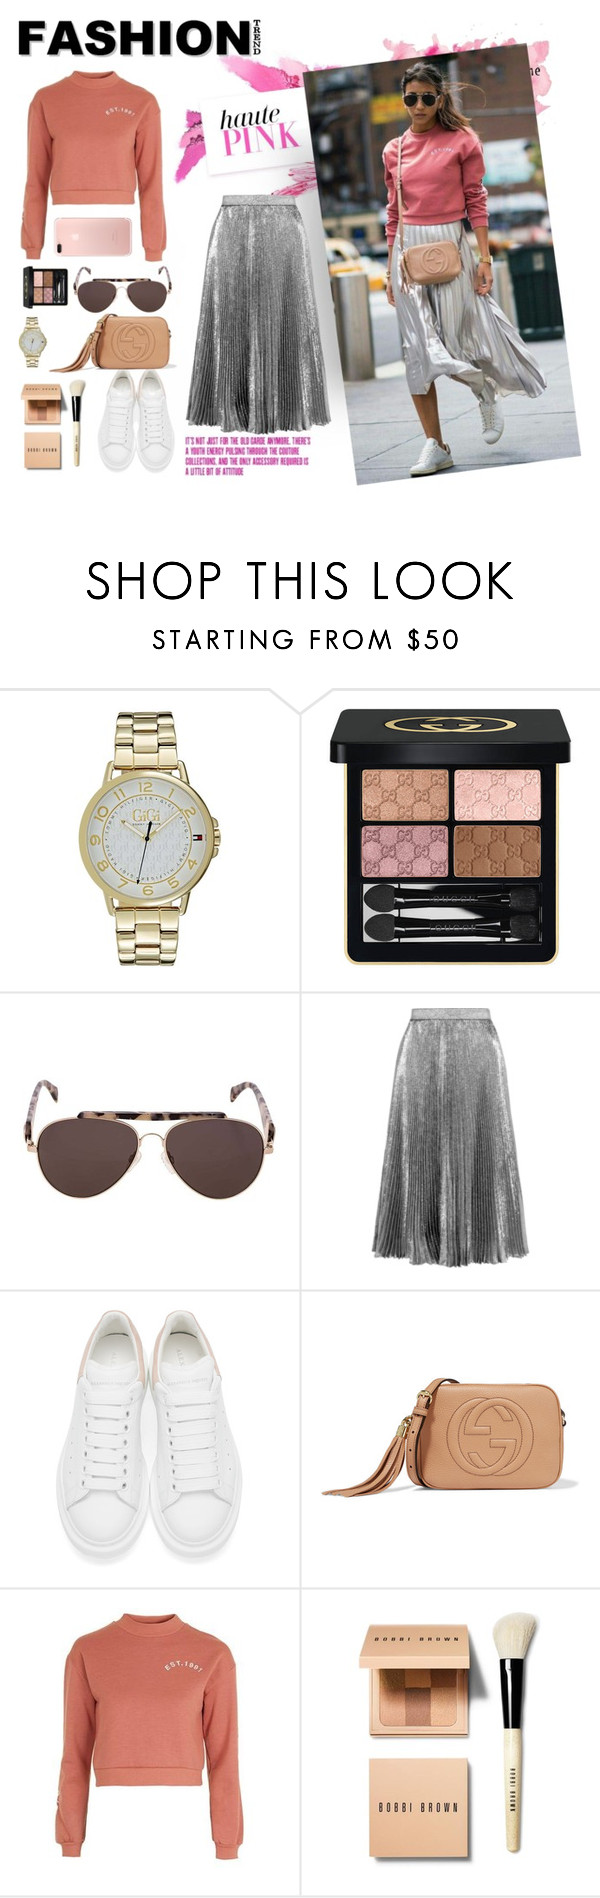 """""""get the street style fw!"""" by jasmimestefany ❤ liked on Polyvore featuring Hedi Slimane, Gucci, Christopher Kane, Alexander McQueen, Topshop and Bobbi Brown Cosmetics"""